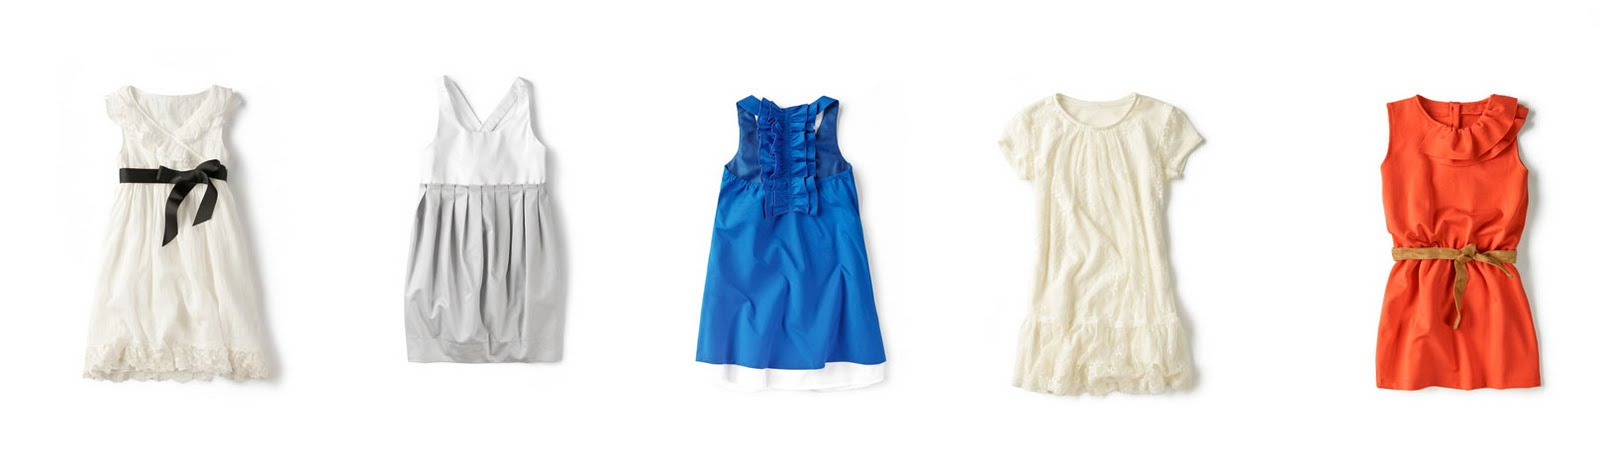 Zara Phillips Flower Girl Dresses 114